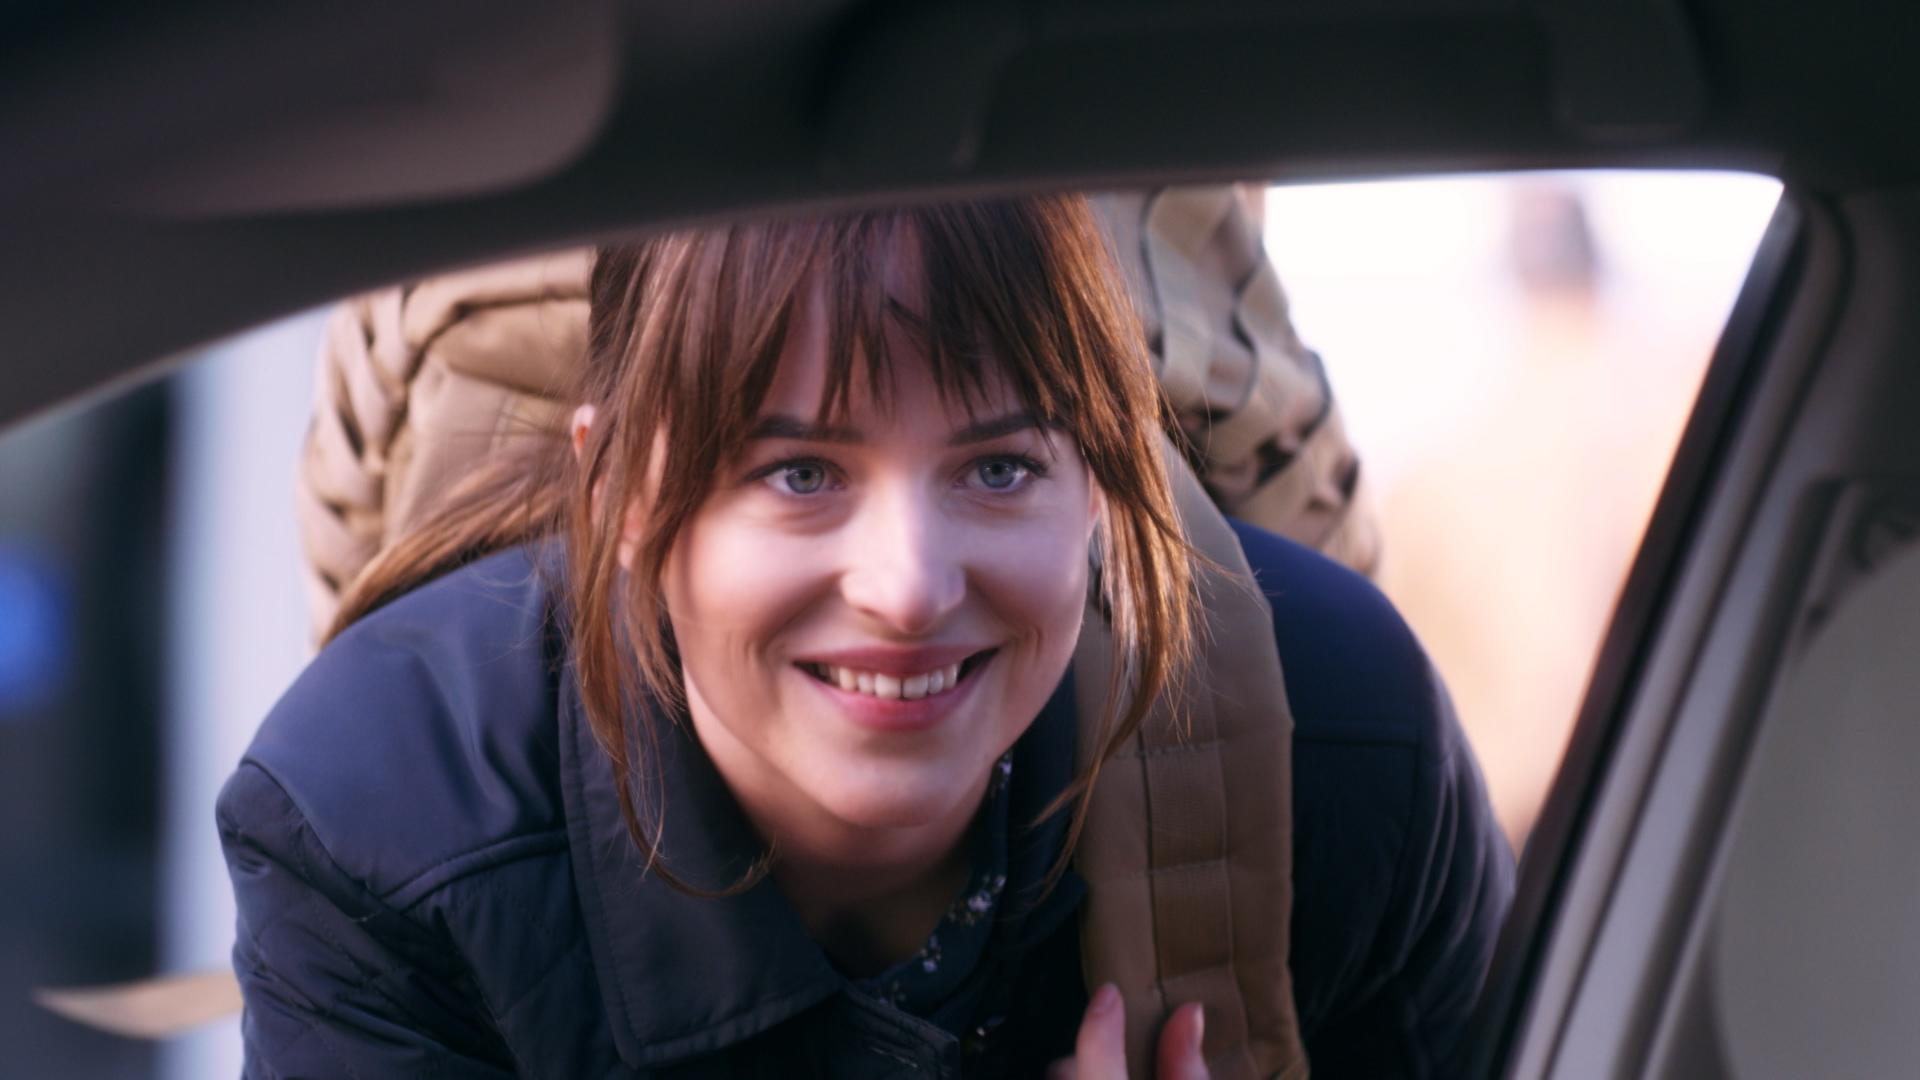 Dakota Johnson's 'SNL' ISIS spoof stirs outrage online